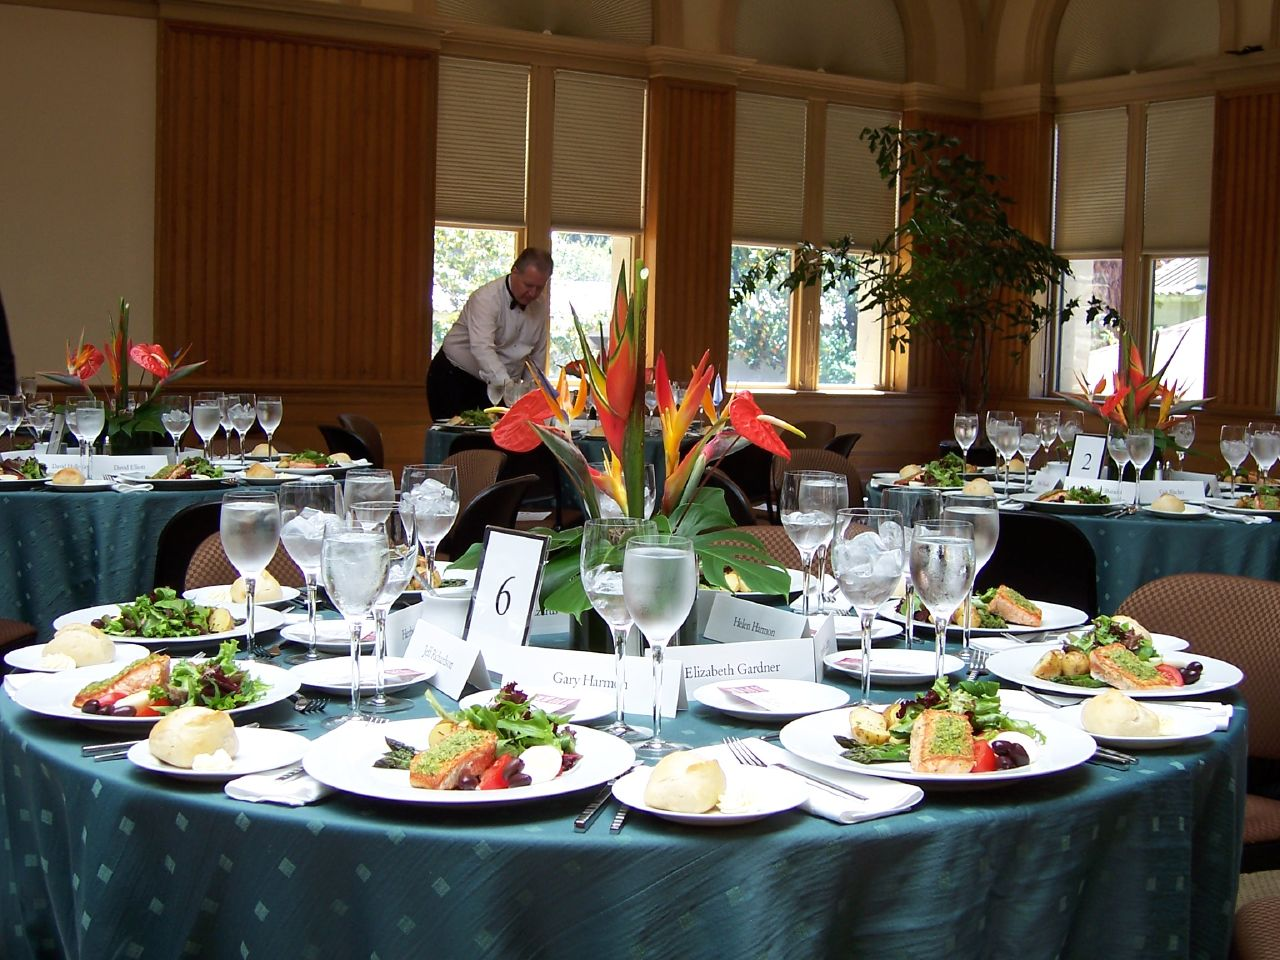 Basic Details When Hiring Catering Services